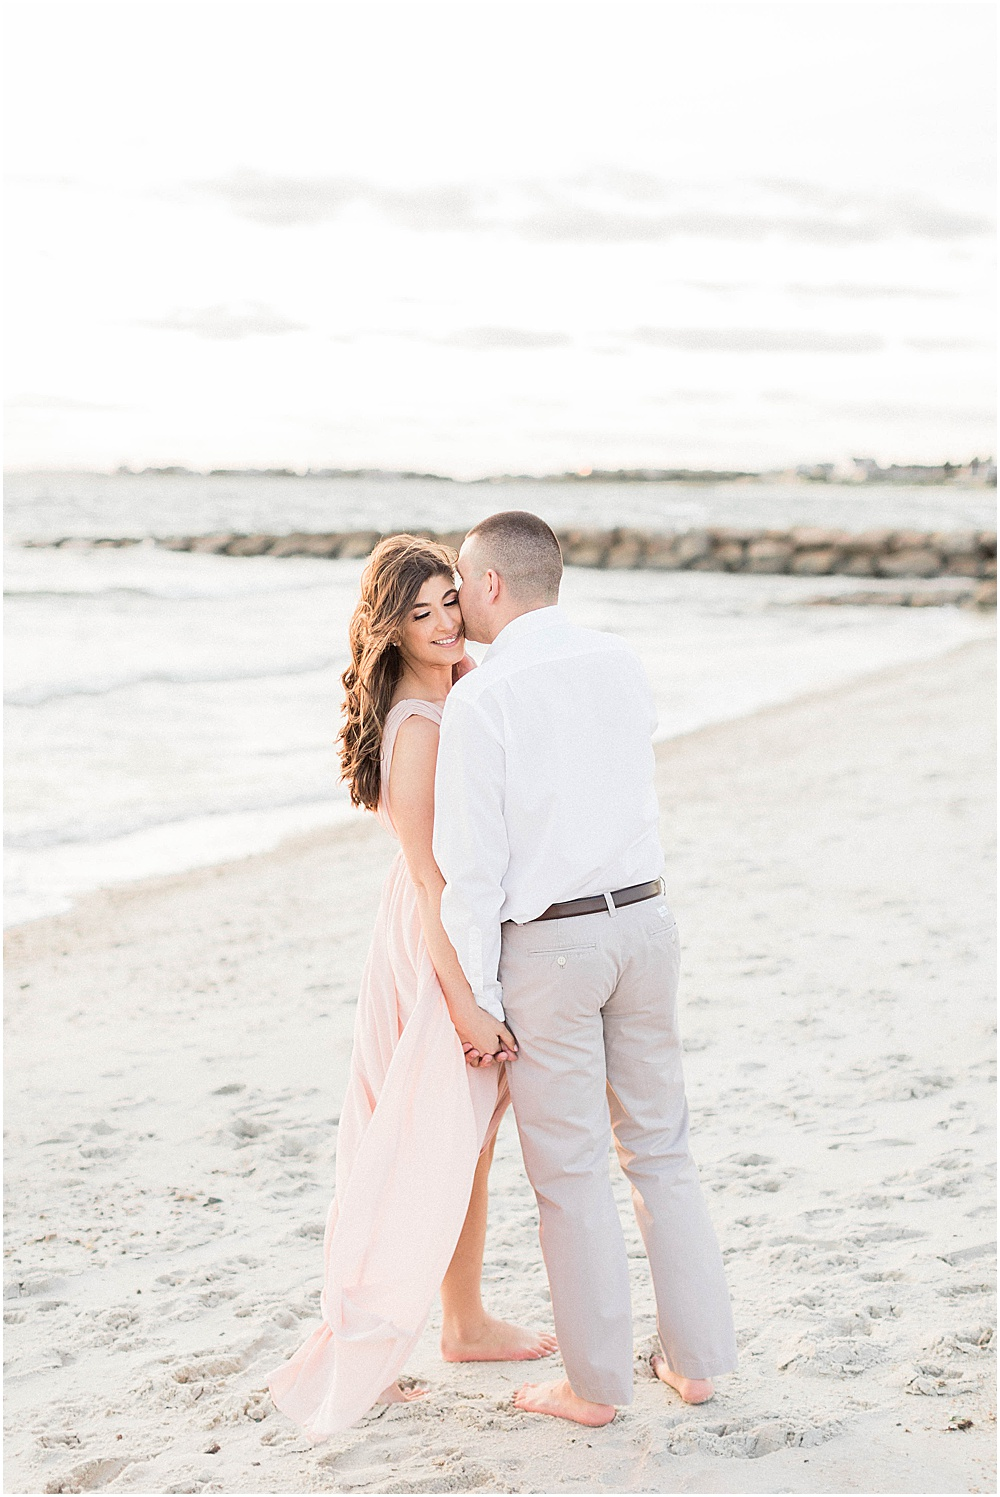 chartroom_old_silver_beach_seacrest_sunset_spring_engagement_session_boston_wedding_photographer_meredith_jane_photography_photo_0252.jpg